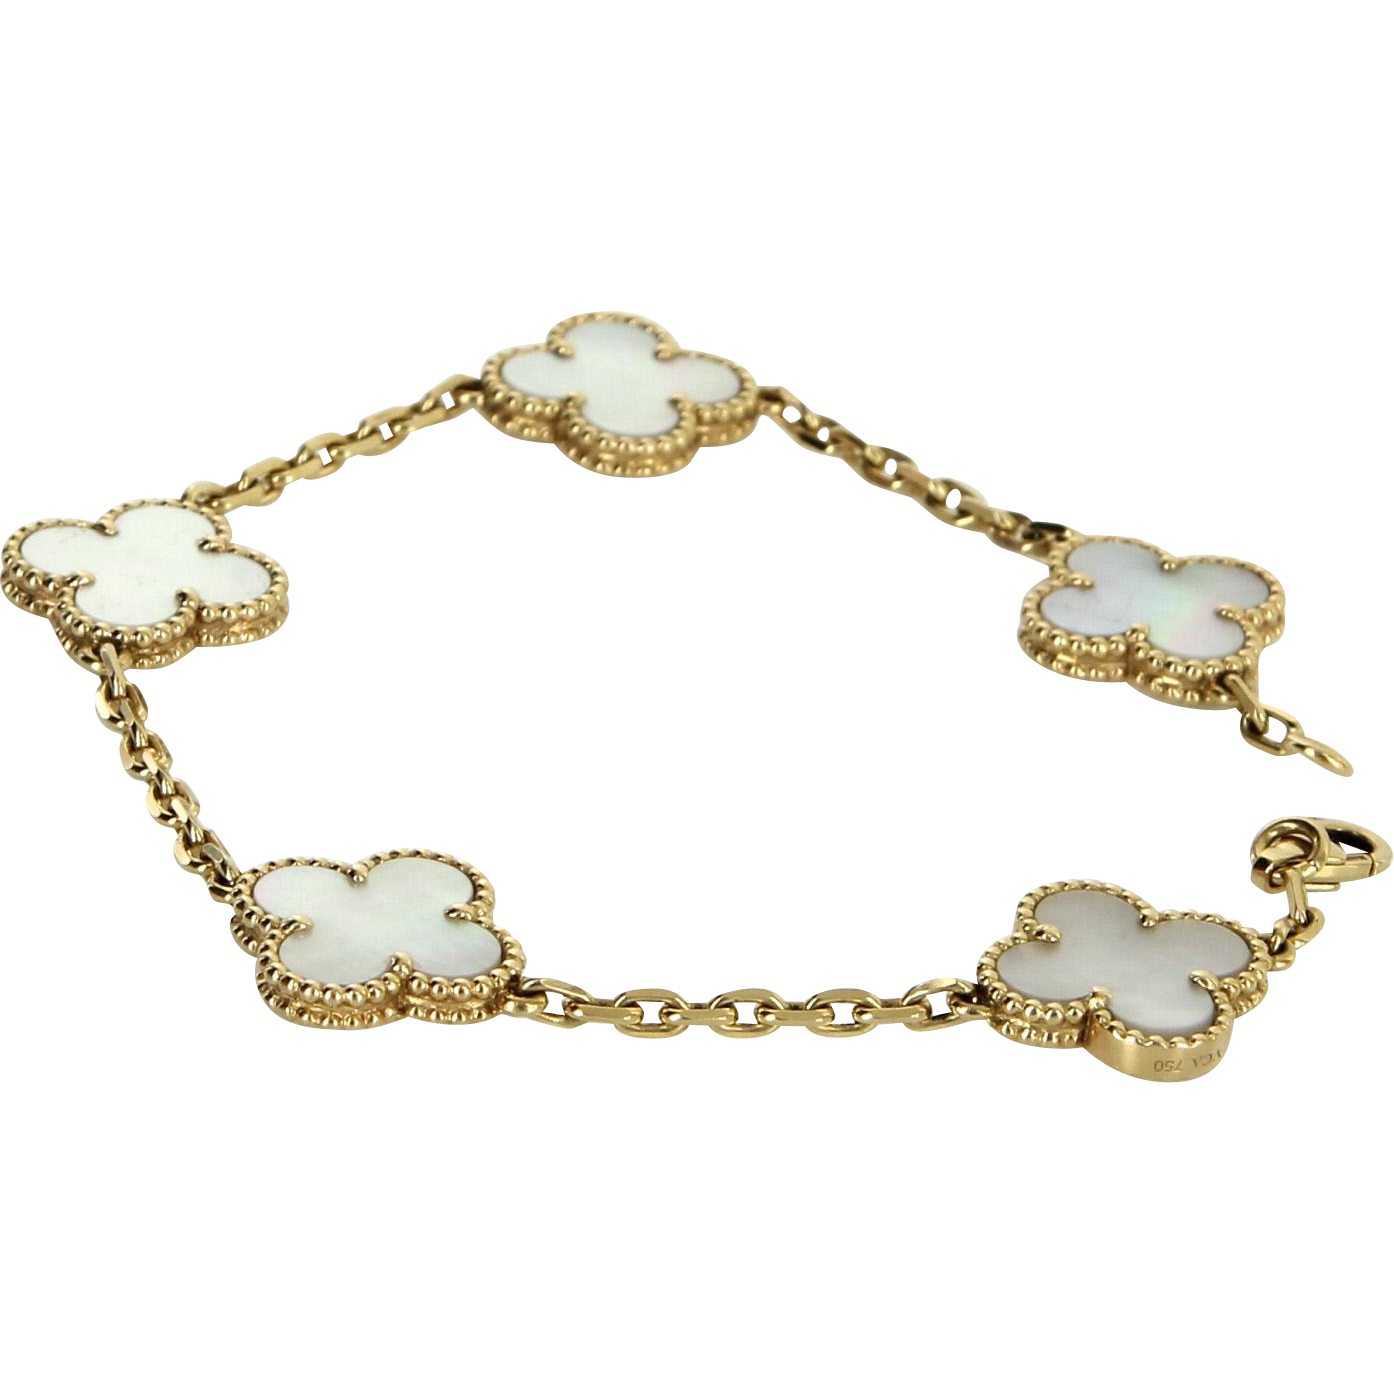 grace of bracelet the how princess worn one vintage cleef icons line women maison by decades from alhambra s most jewelry to been stylish monaco throughout has van its arpels recognizable authenticate